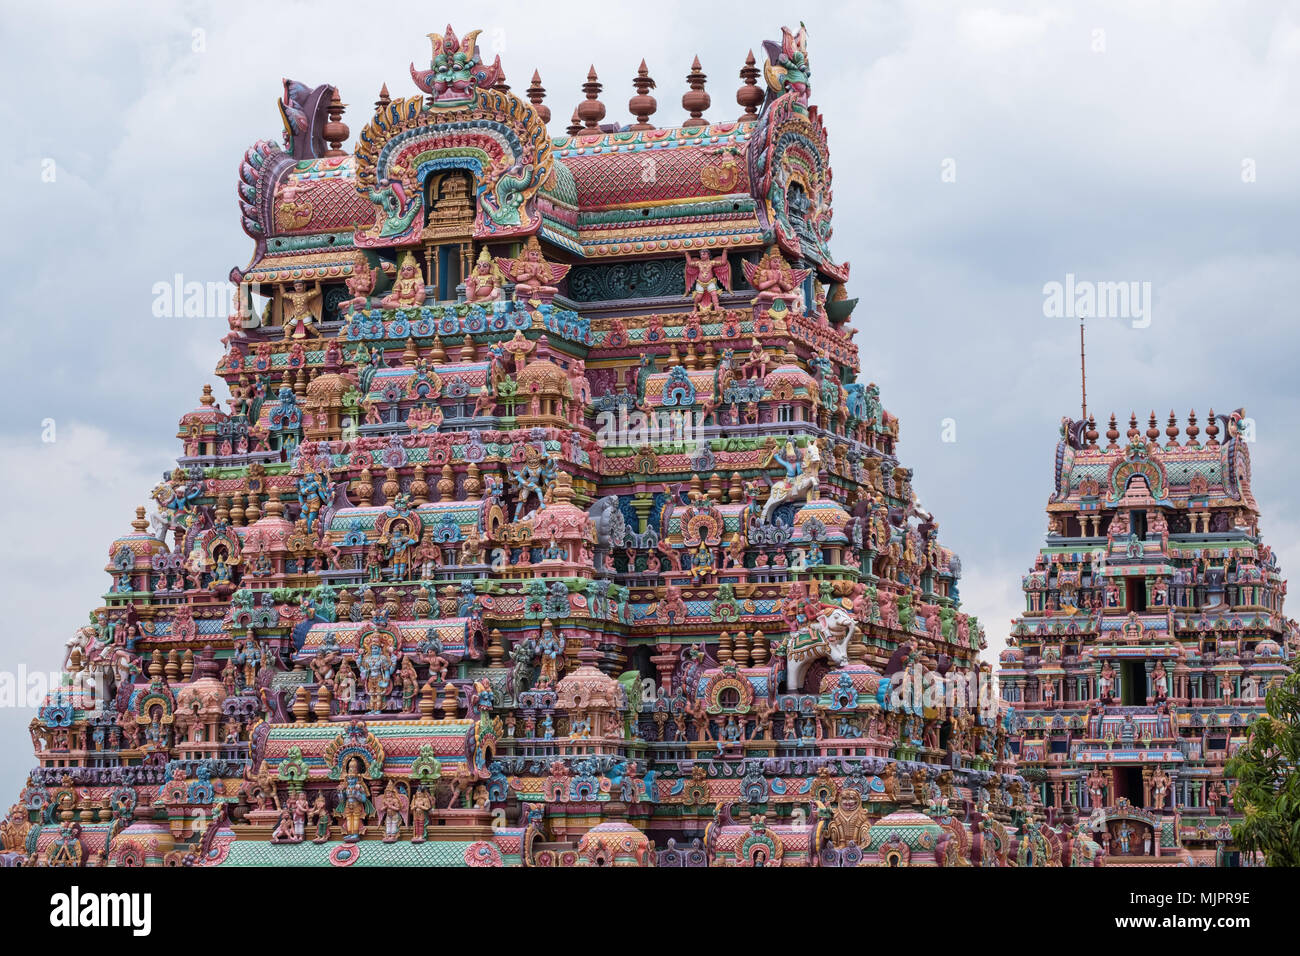 Two of the intricately carved and painted entrance gateways, or Gopurams, at the Ranganathaswamy temple at Srirangam at Trichy in Tamil Nadu Stock Photo